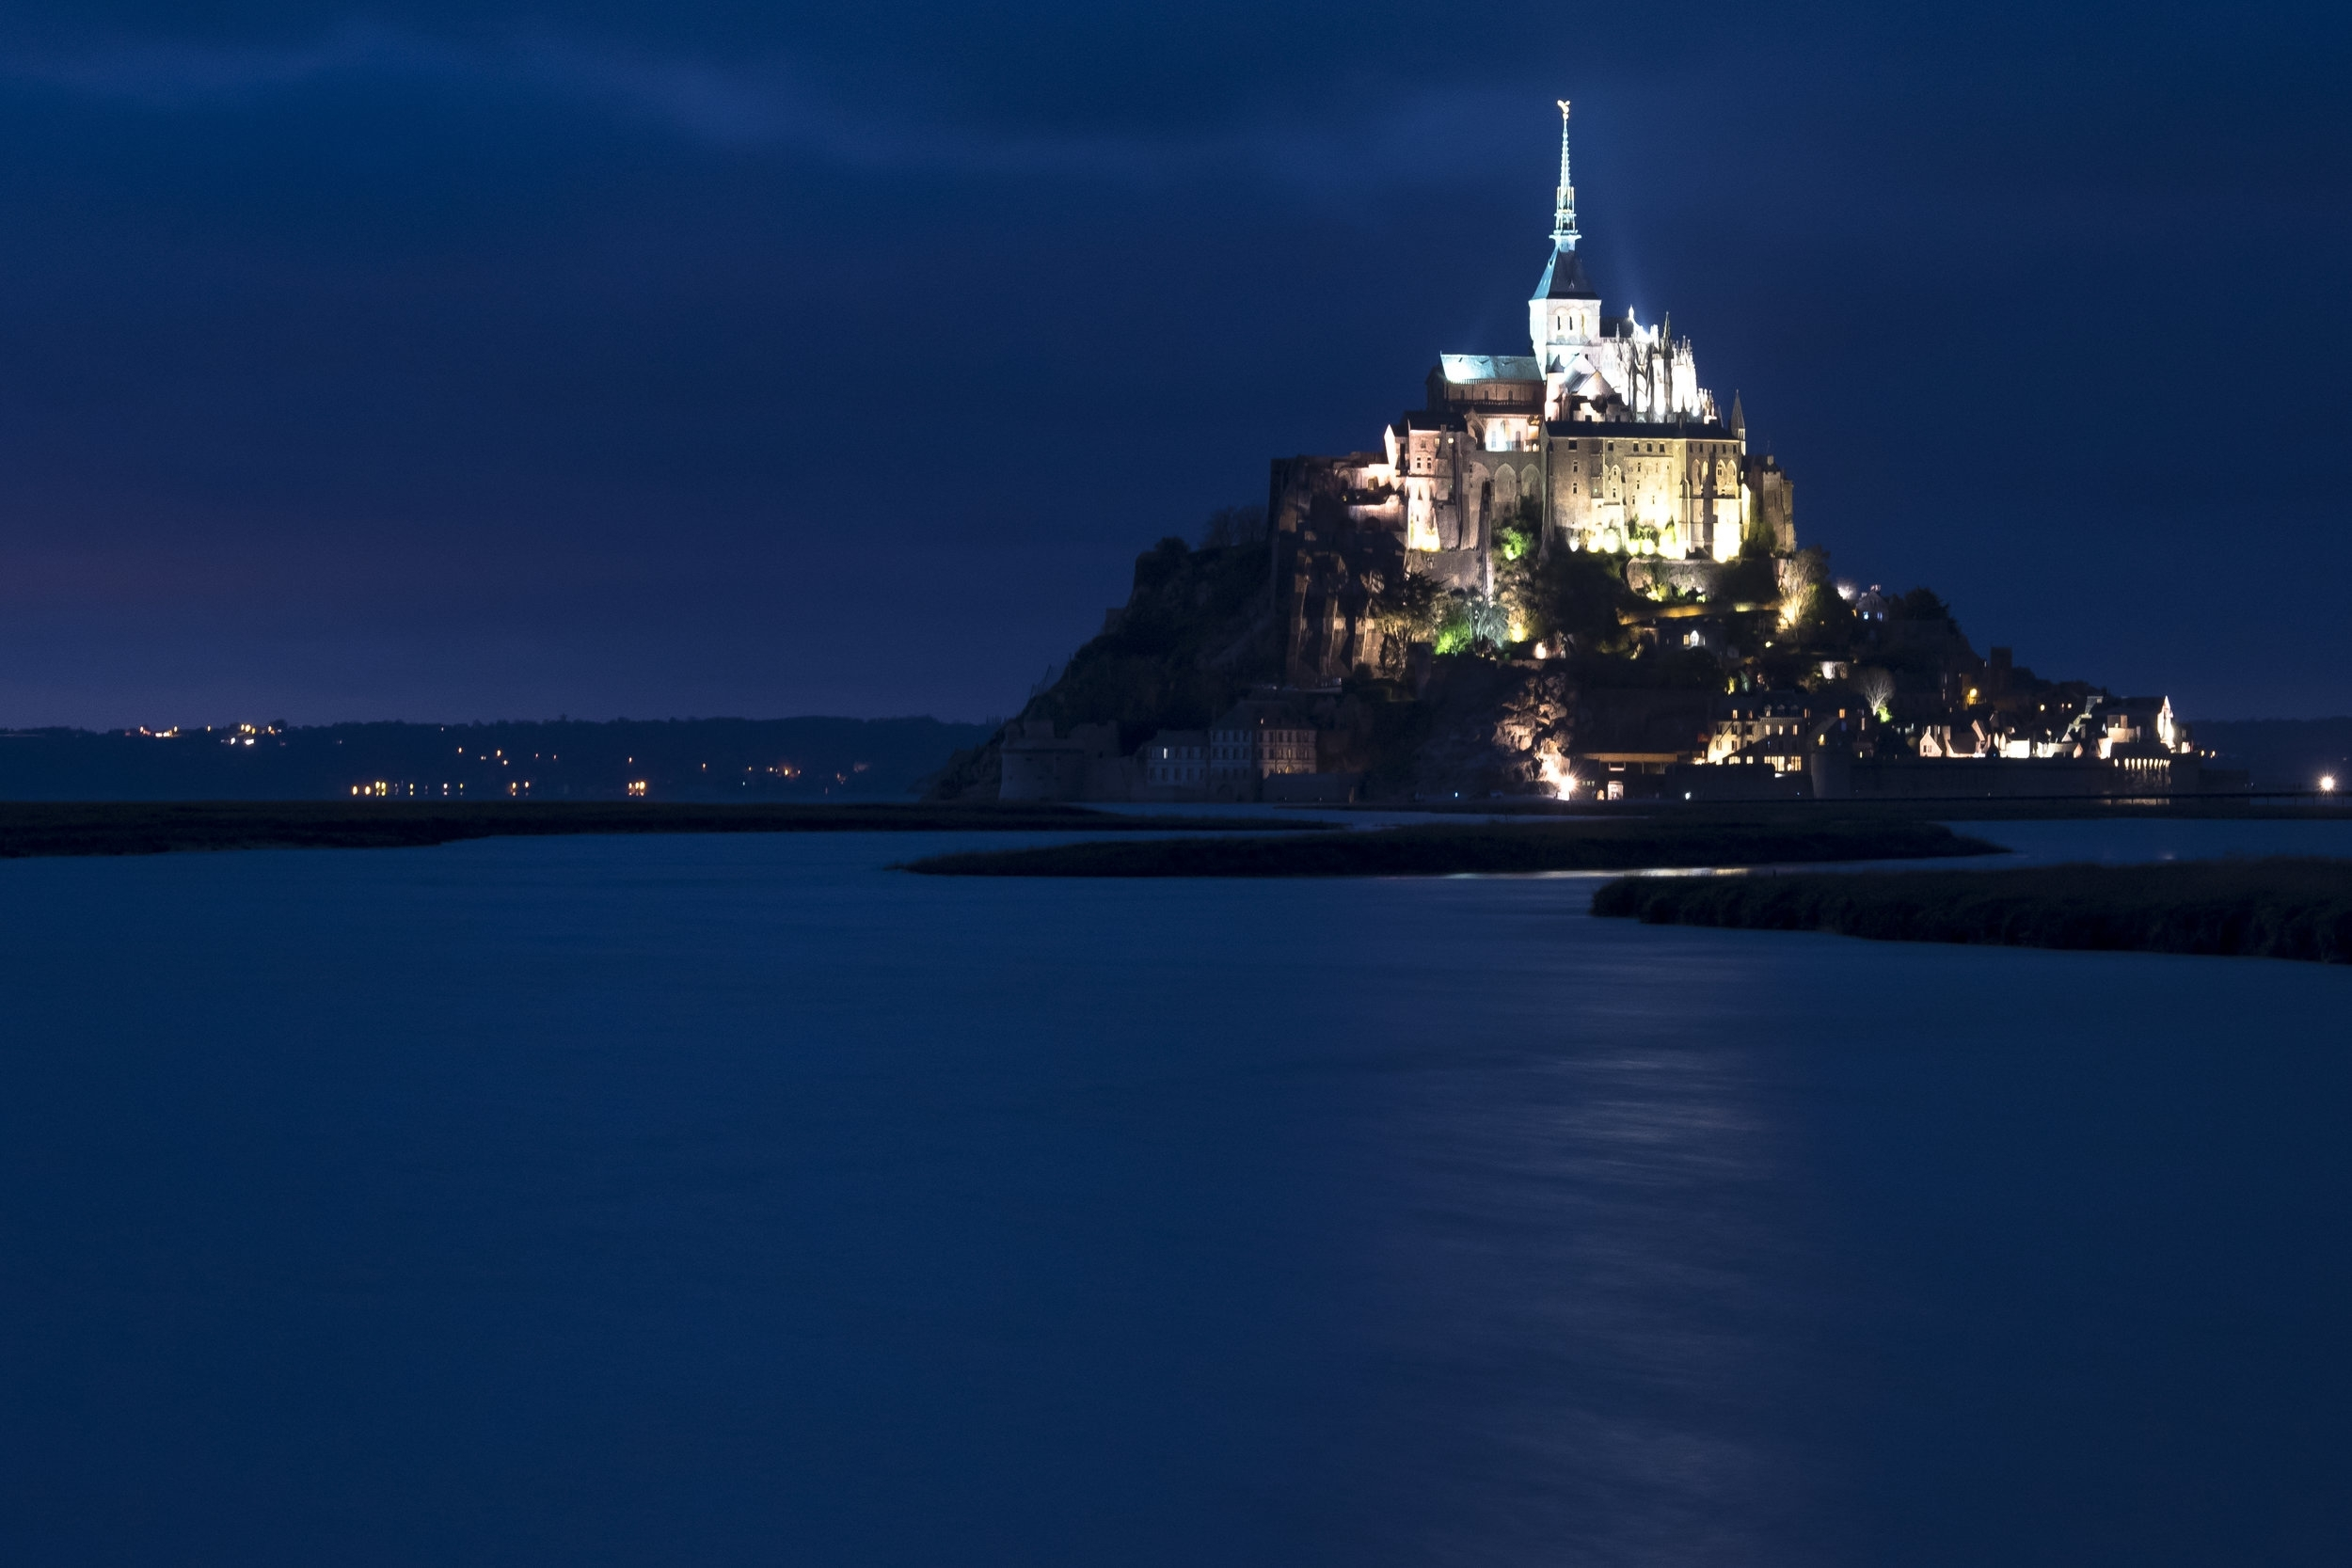 Ocean Fortress - Mont St. Michel (Normandy, France)